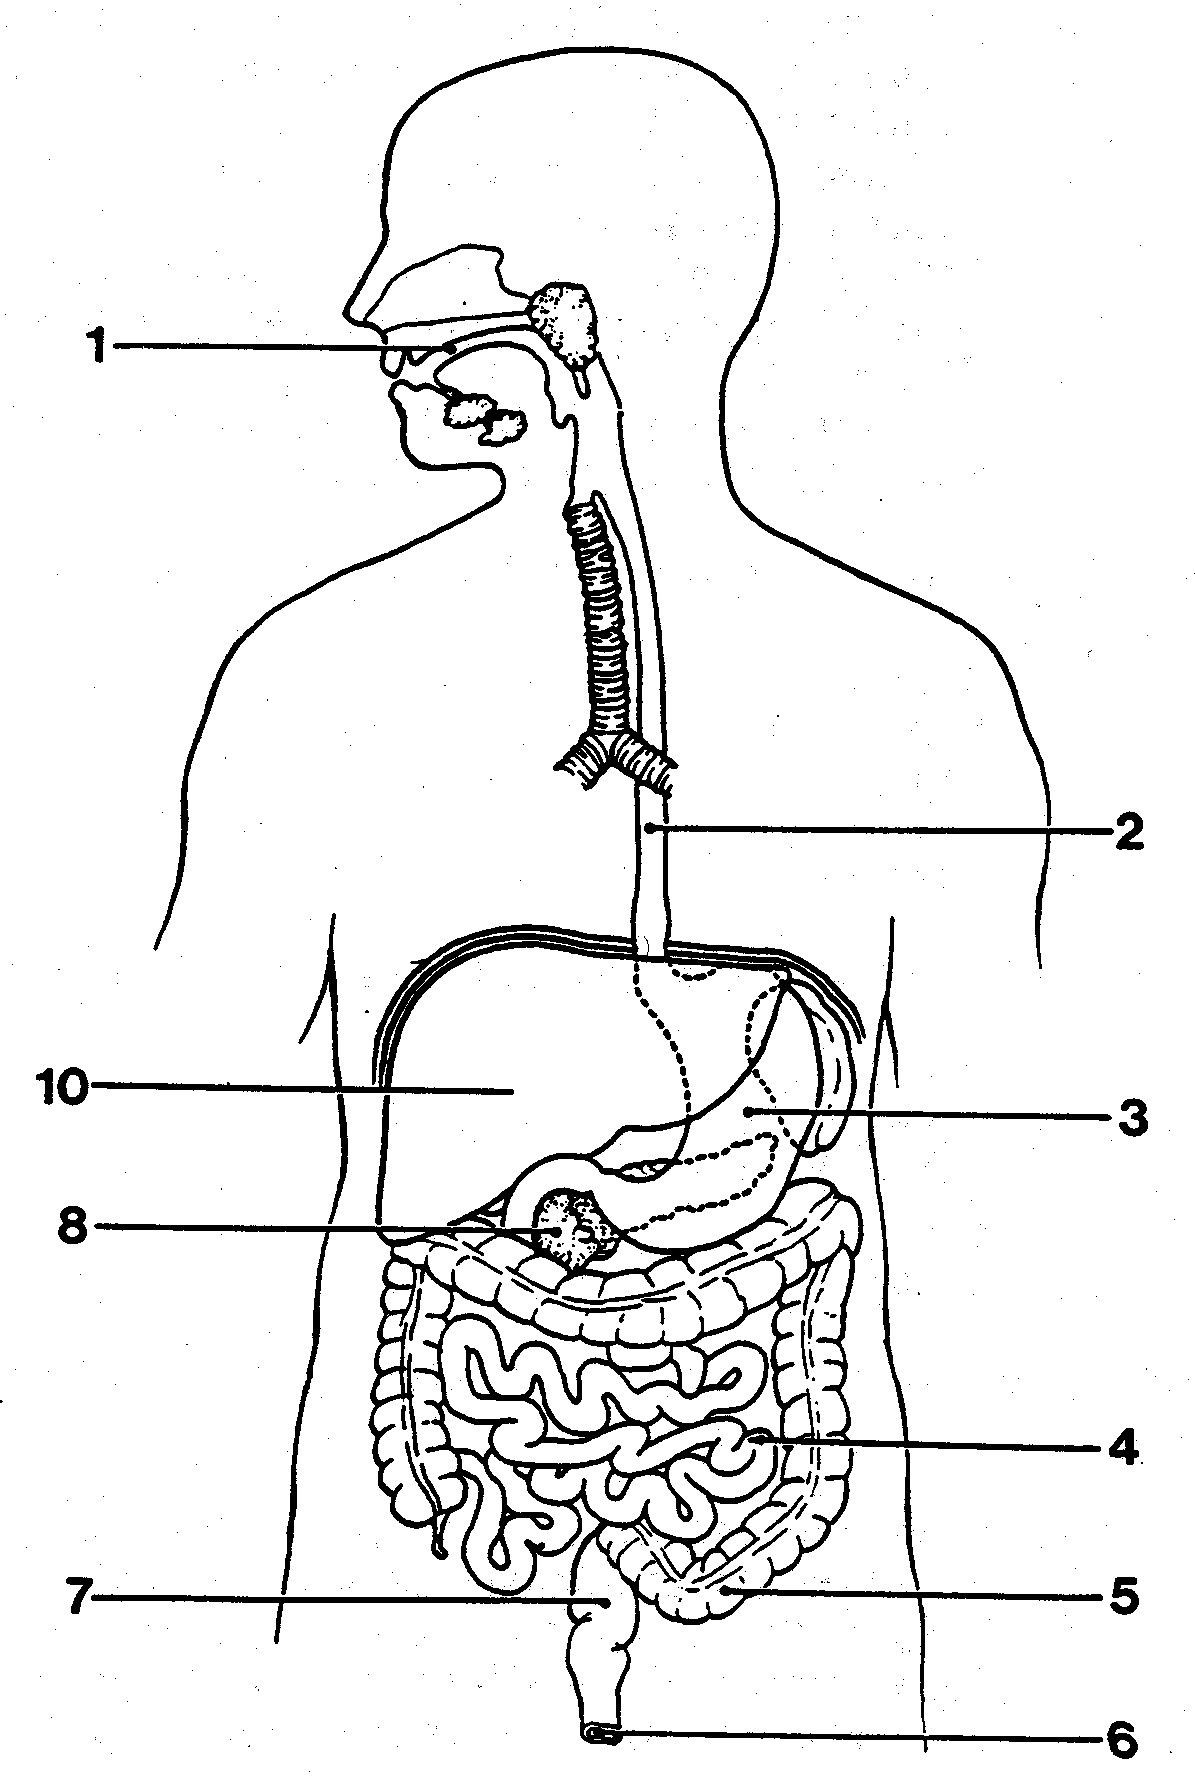 Digestive System Worksheets Middle School Readable the Human Digestive System Worksheet